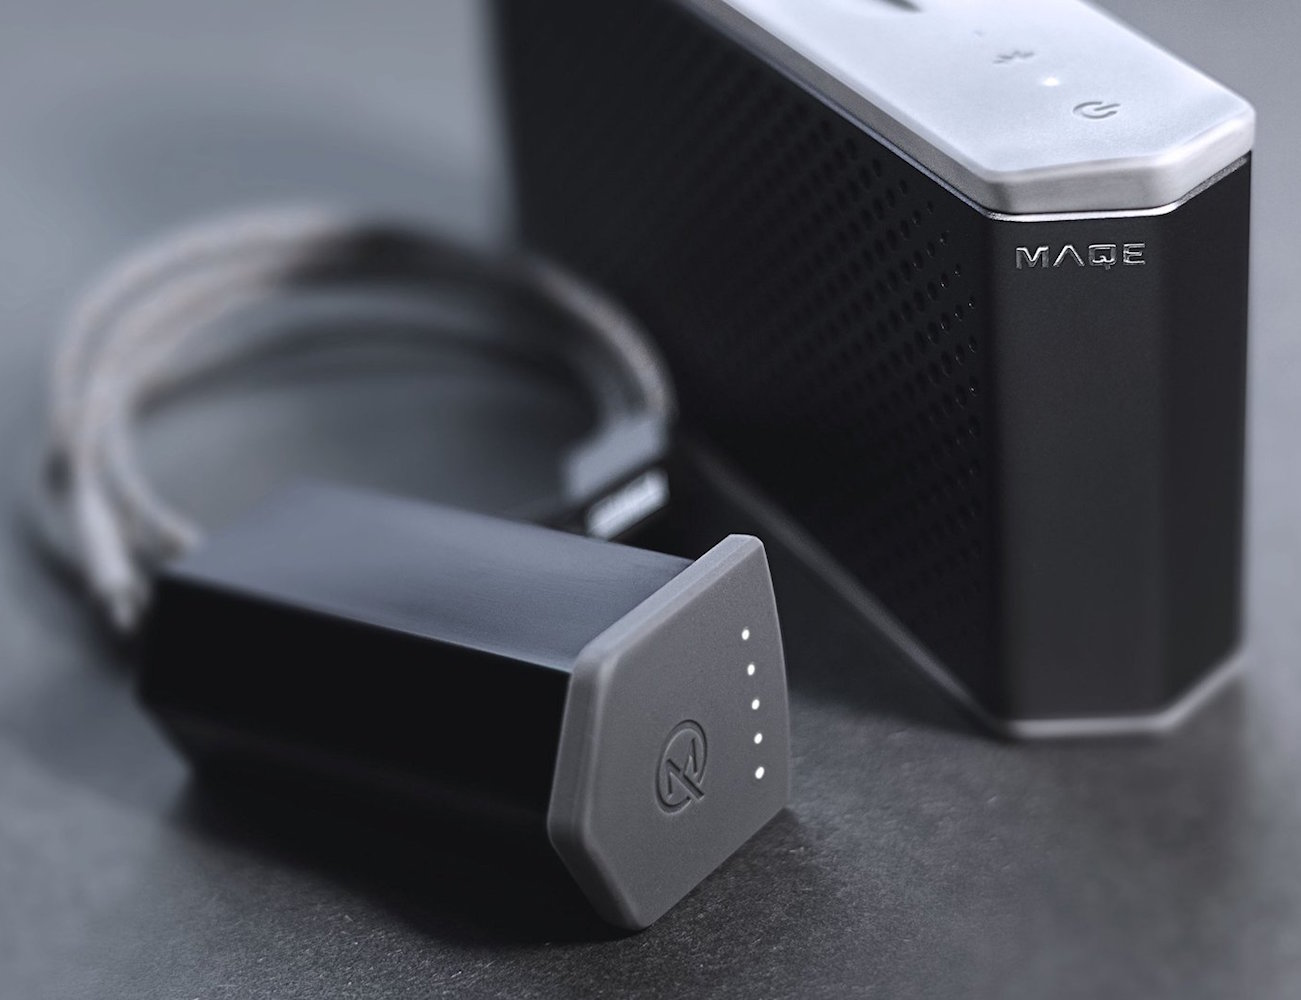 maqe-soundjump-bluetooth-speaker-with-power-bank-02